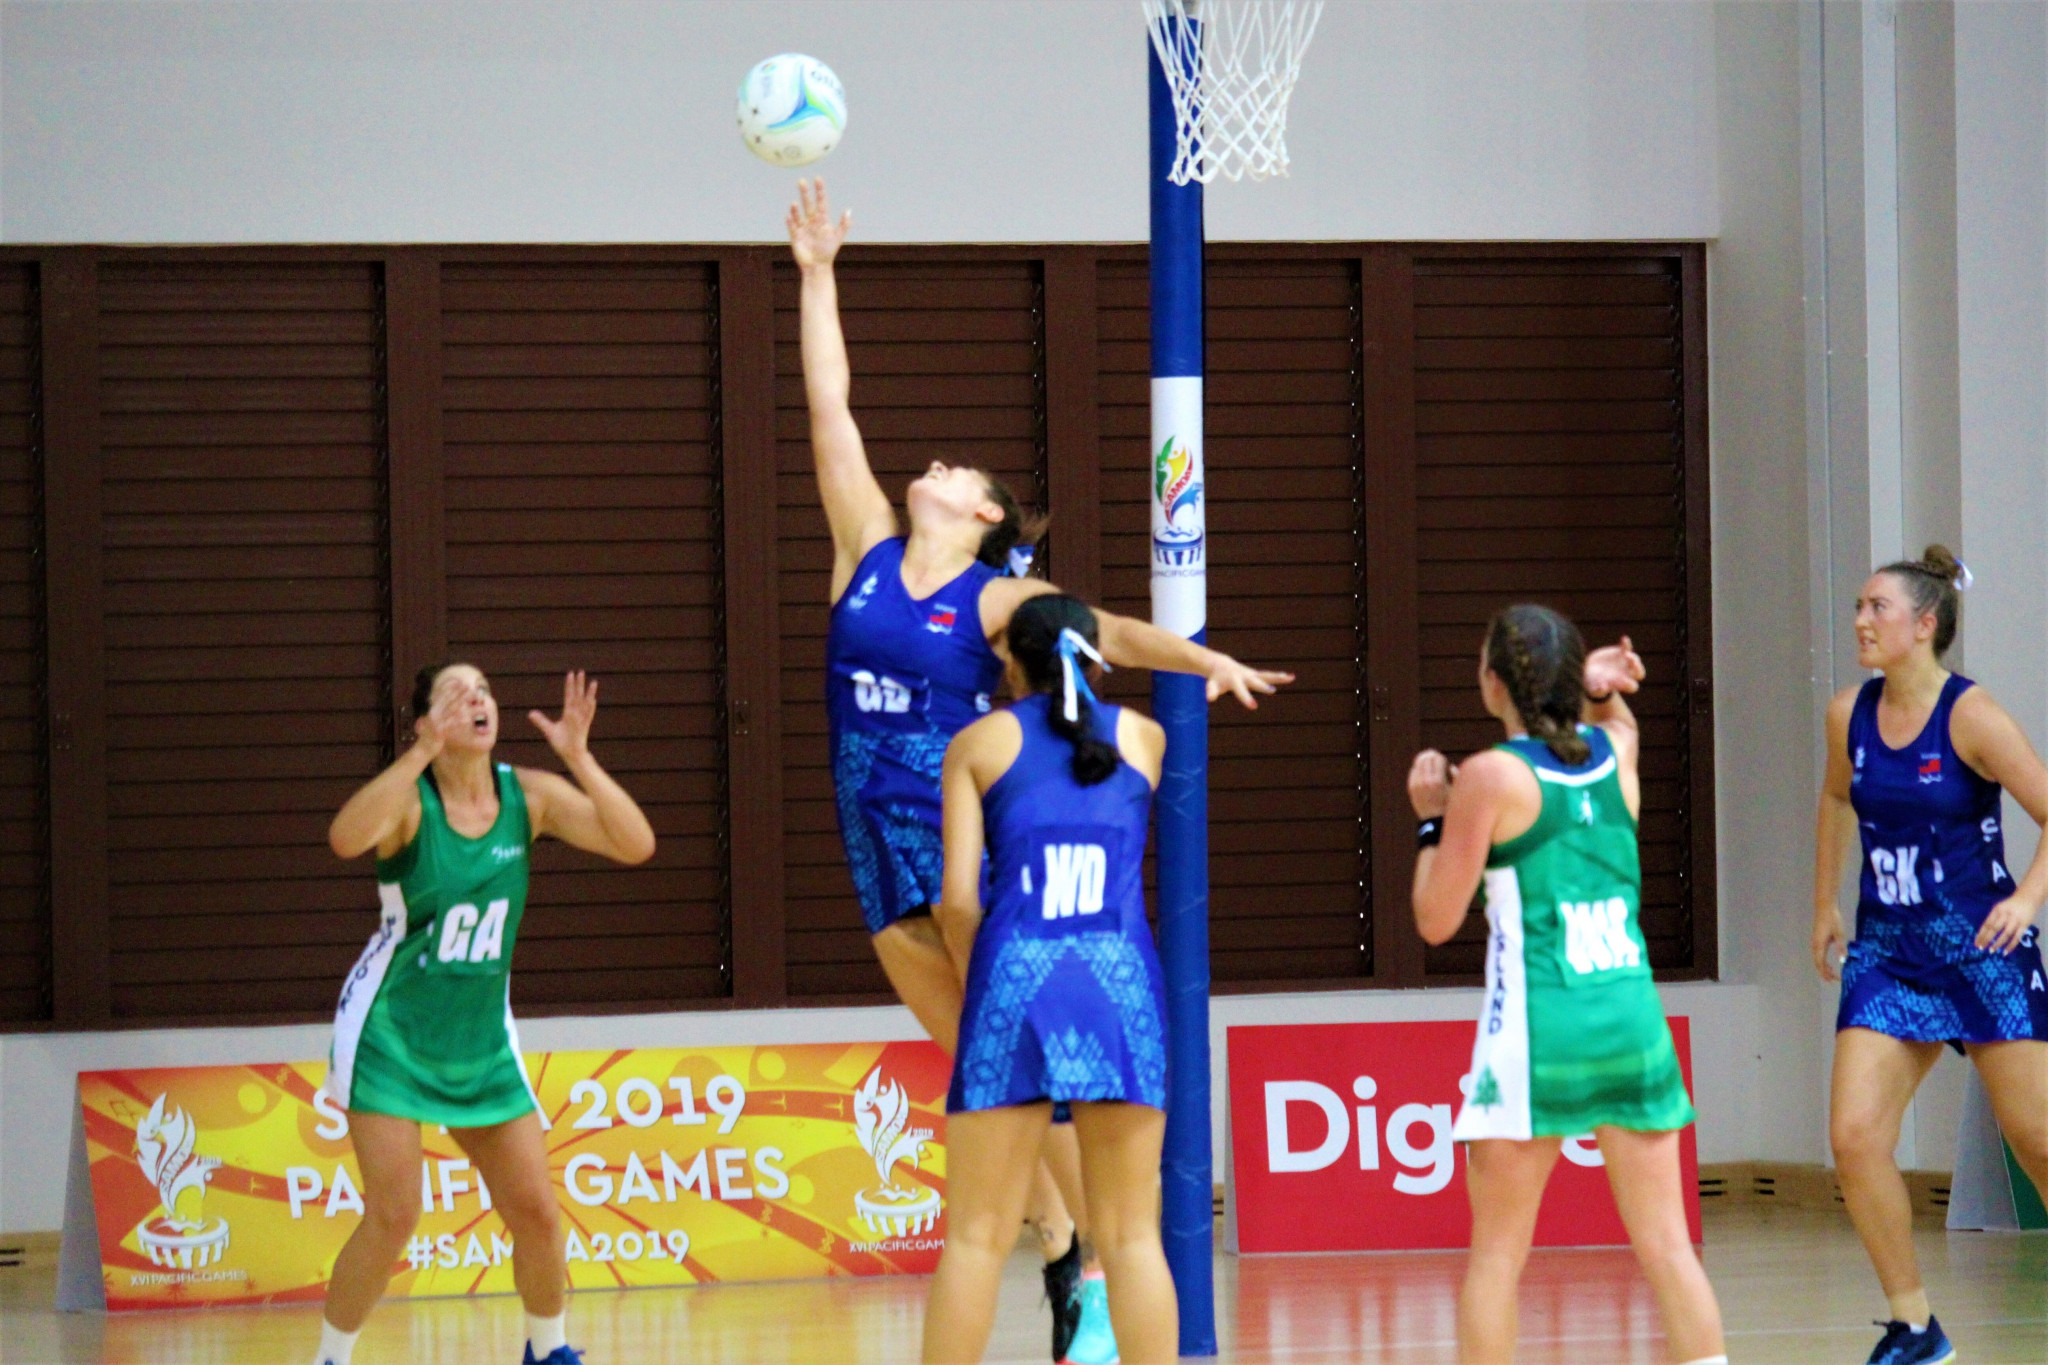 The multi-sport centre hosted the latest netball matches ©Pacific Games News Service